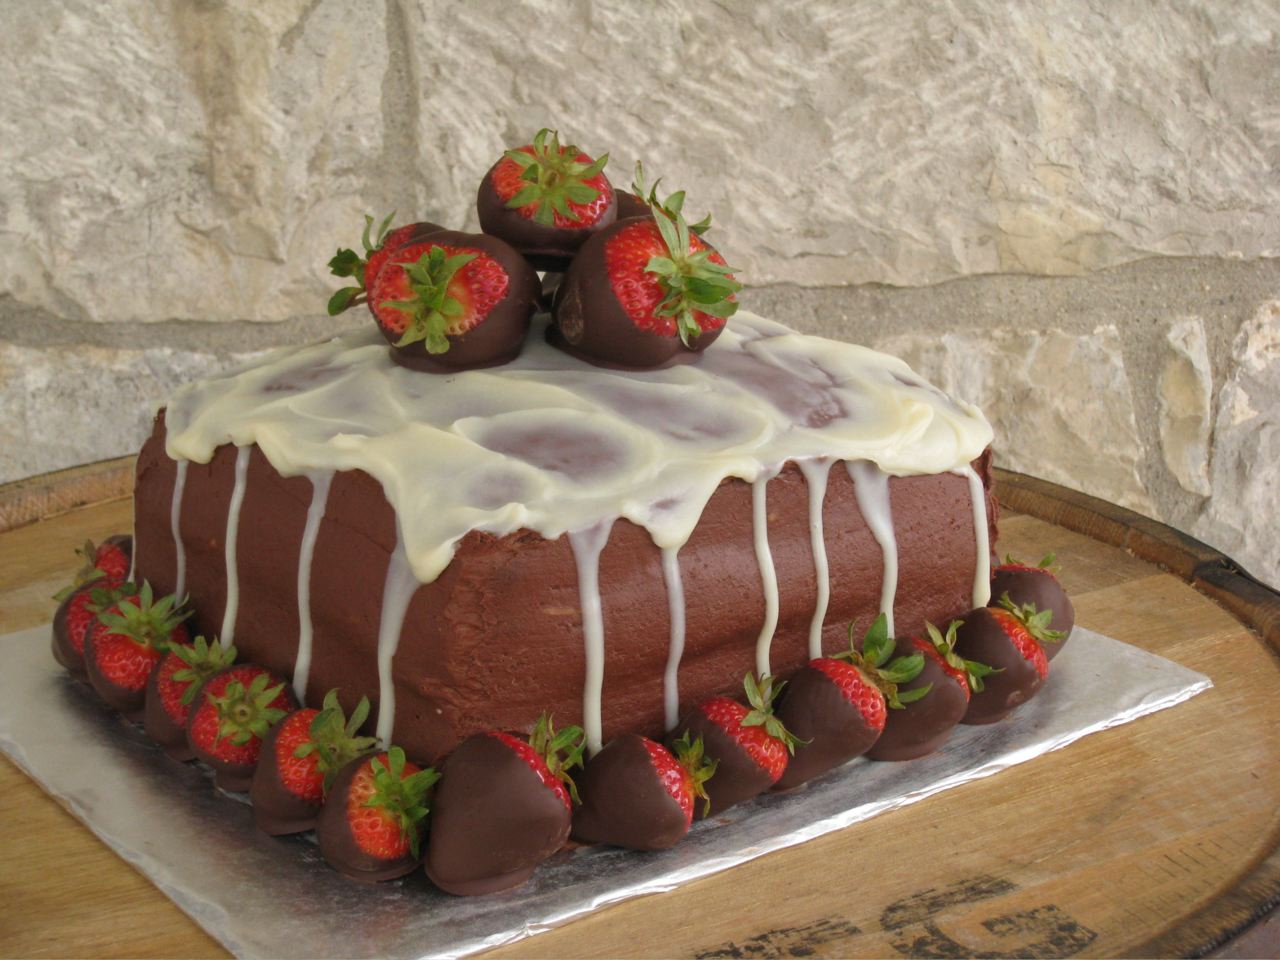 choc-strawberry